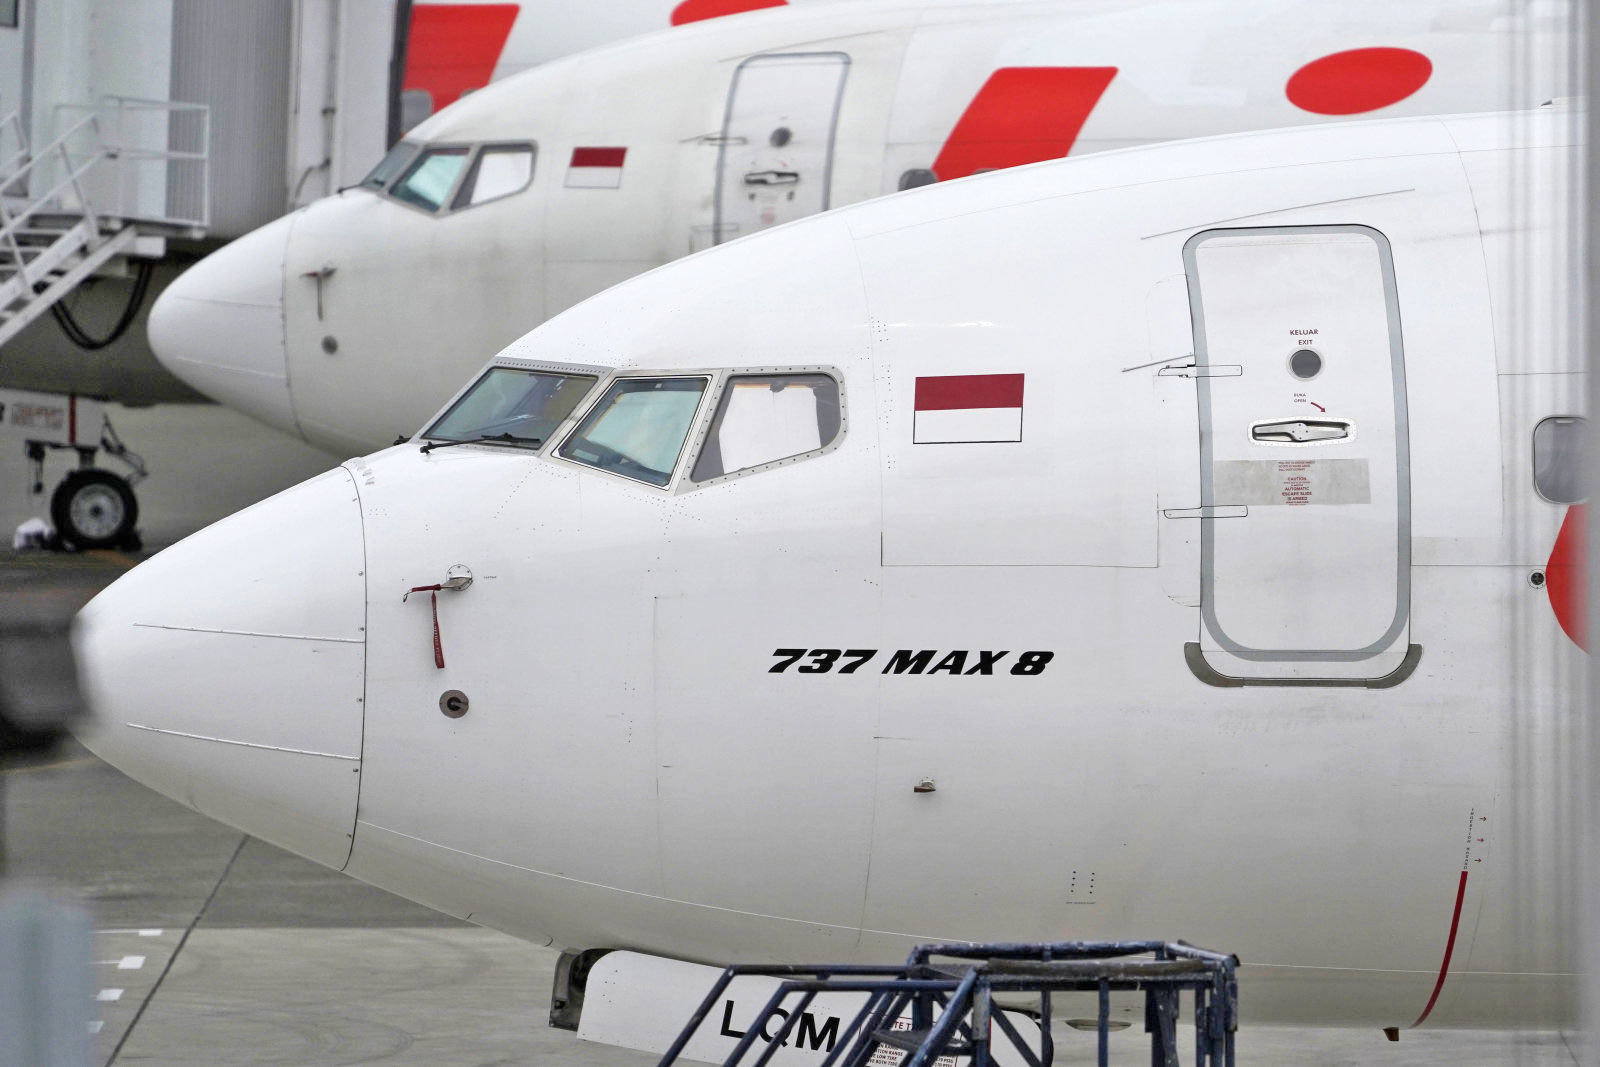 Boeing reduced production of problem airplanes 737 MAX